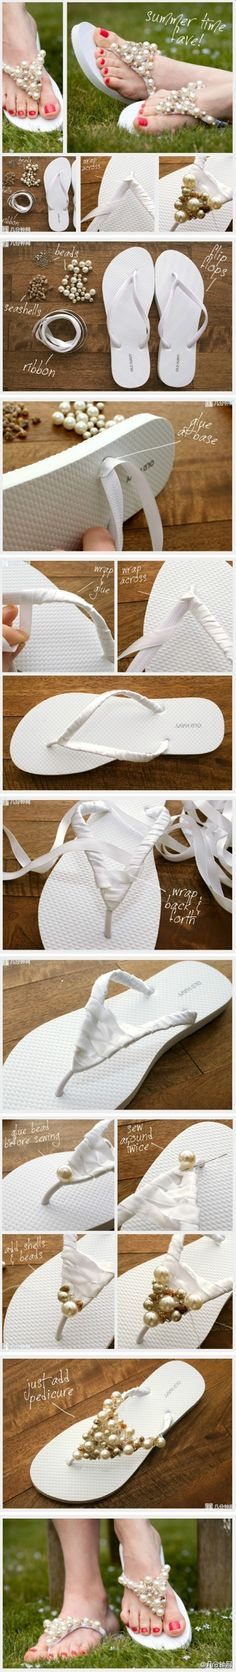 Another flip-flop redo...cute! - Click image to find more diy & crafts Pinterest pins-a little confusing when it gets to the instructions about putting the beads on I wish they could explain it or show it better.